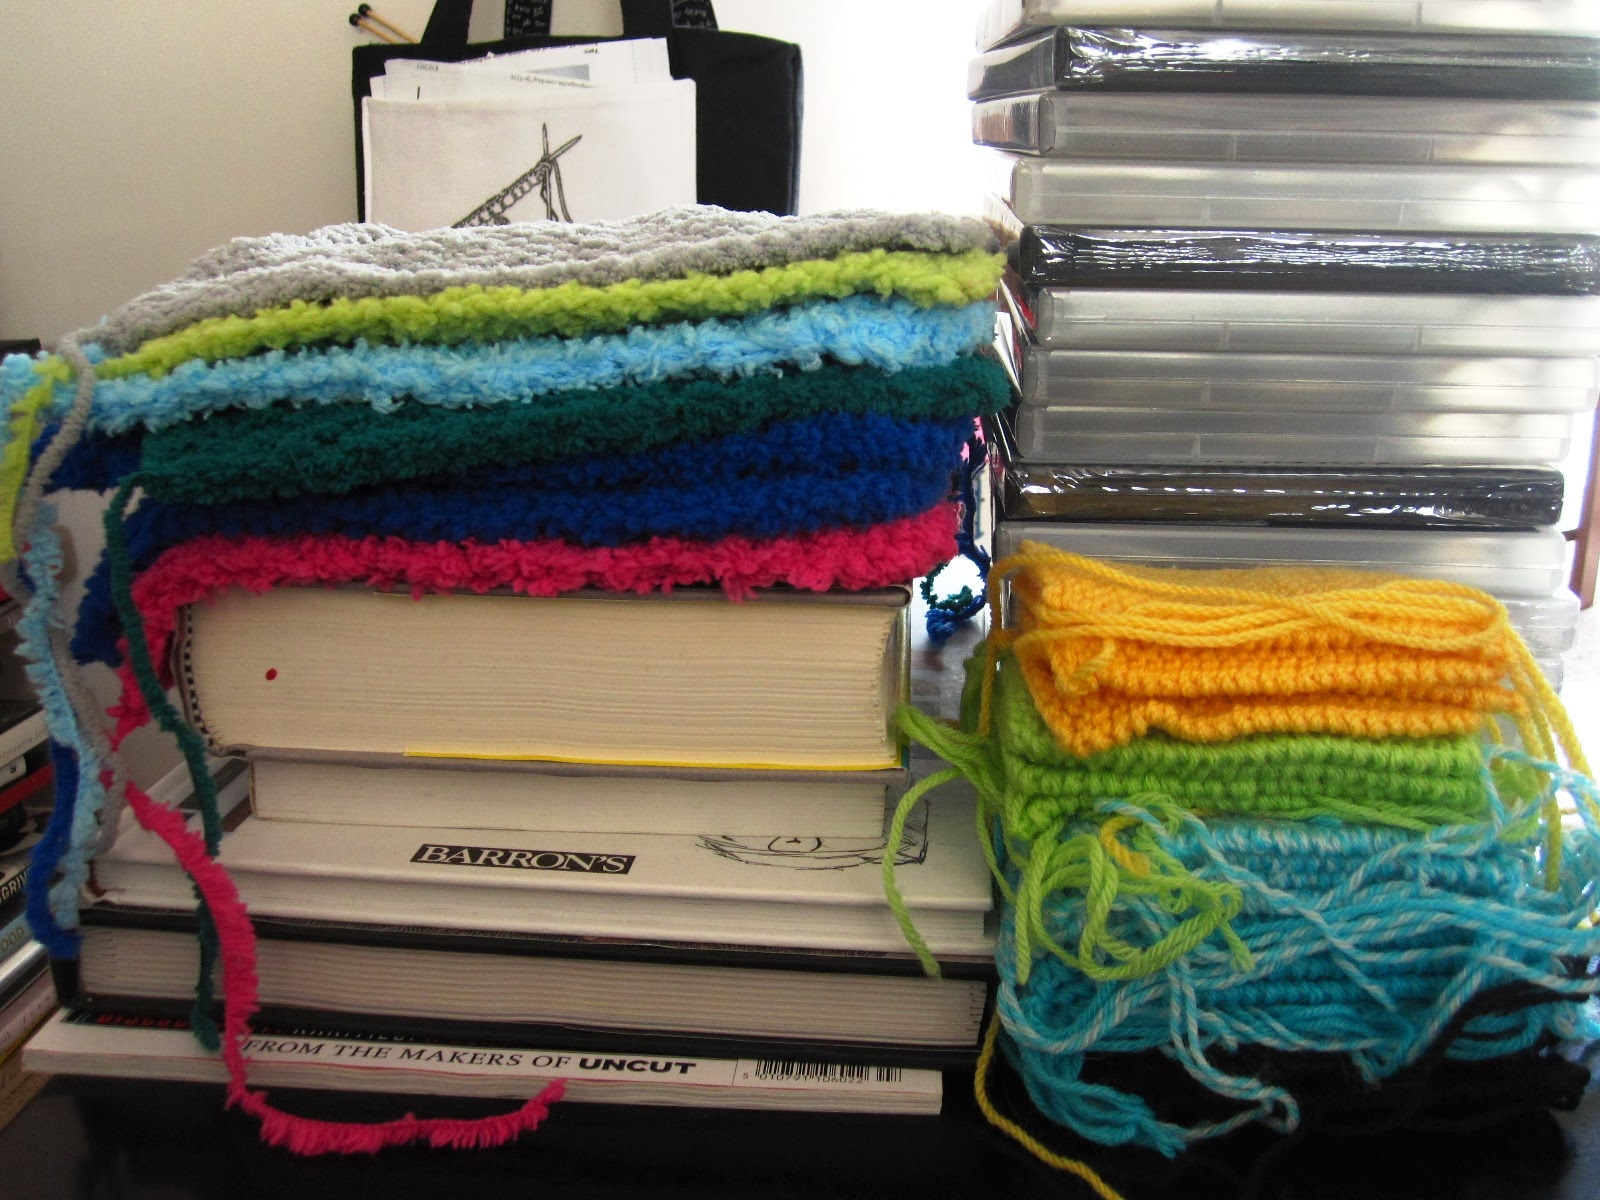 Piles of books, DVDs and rainbow-coloured stacks of knitted rectangles with trailing yarn ends